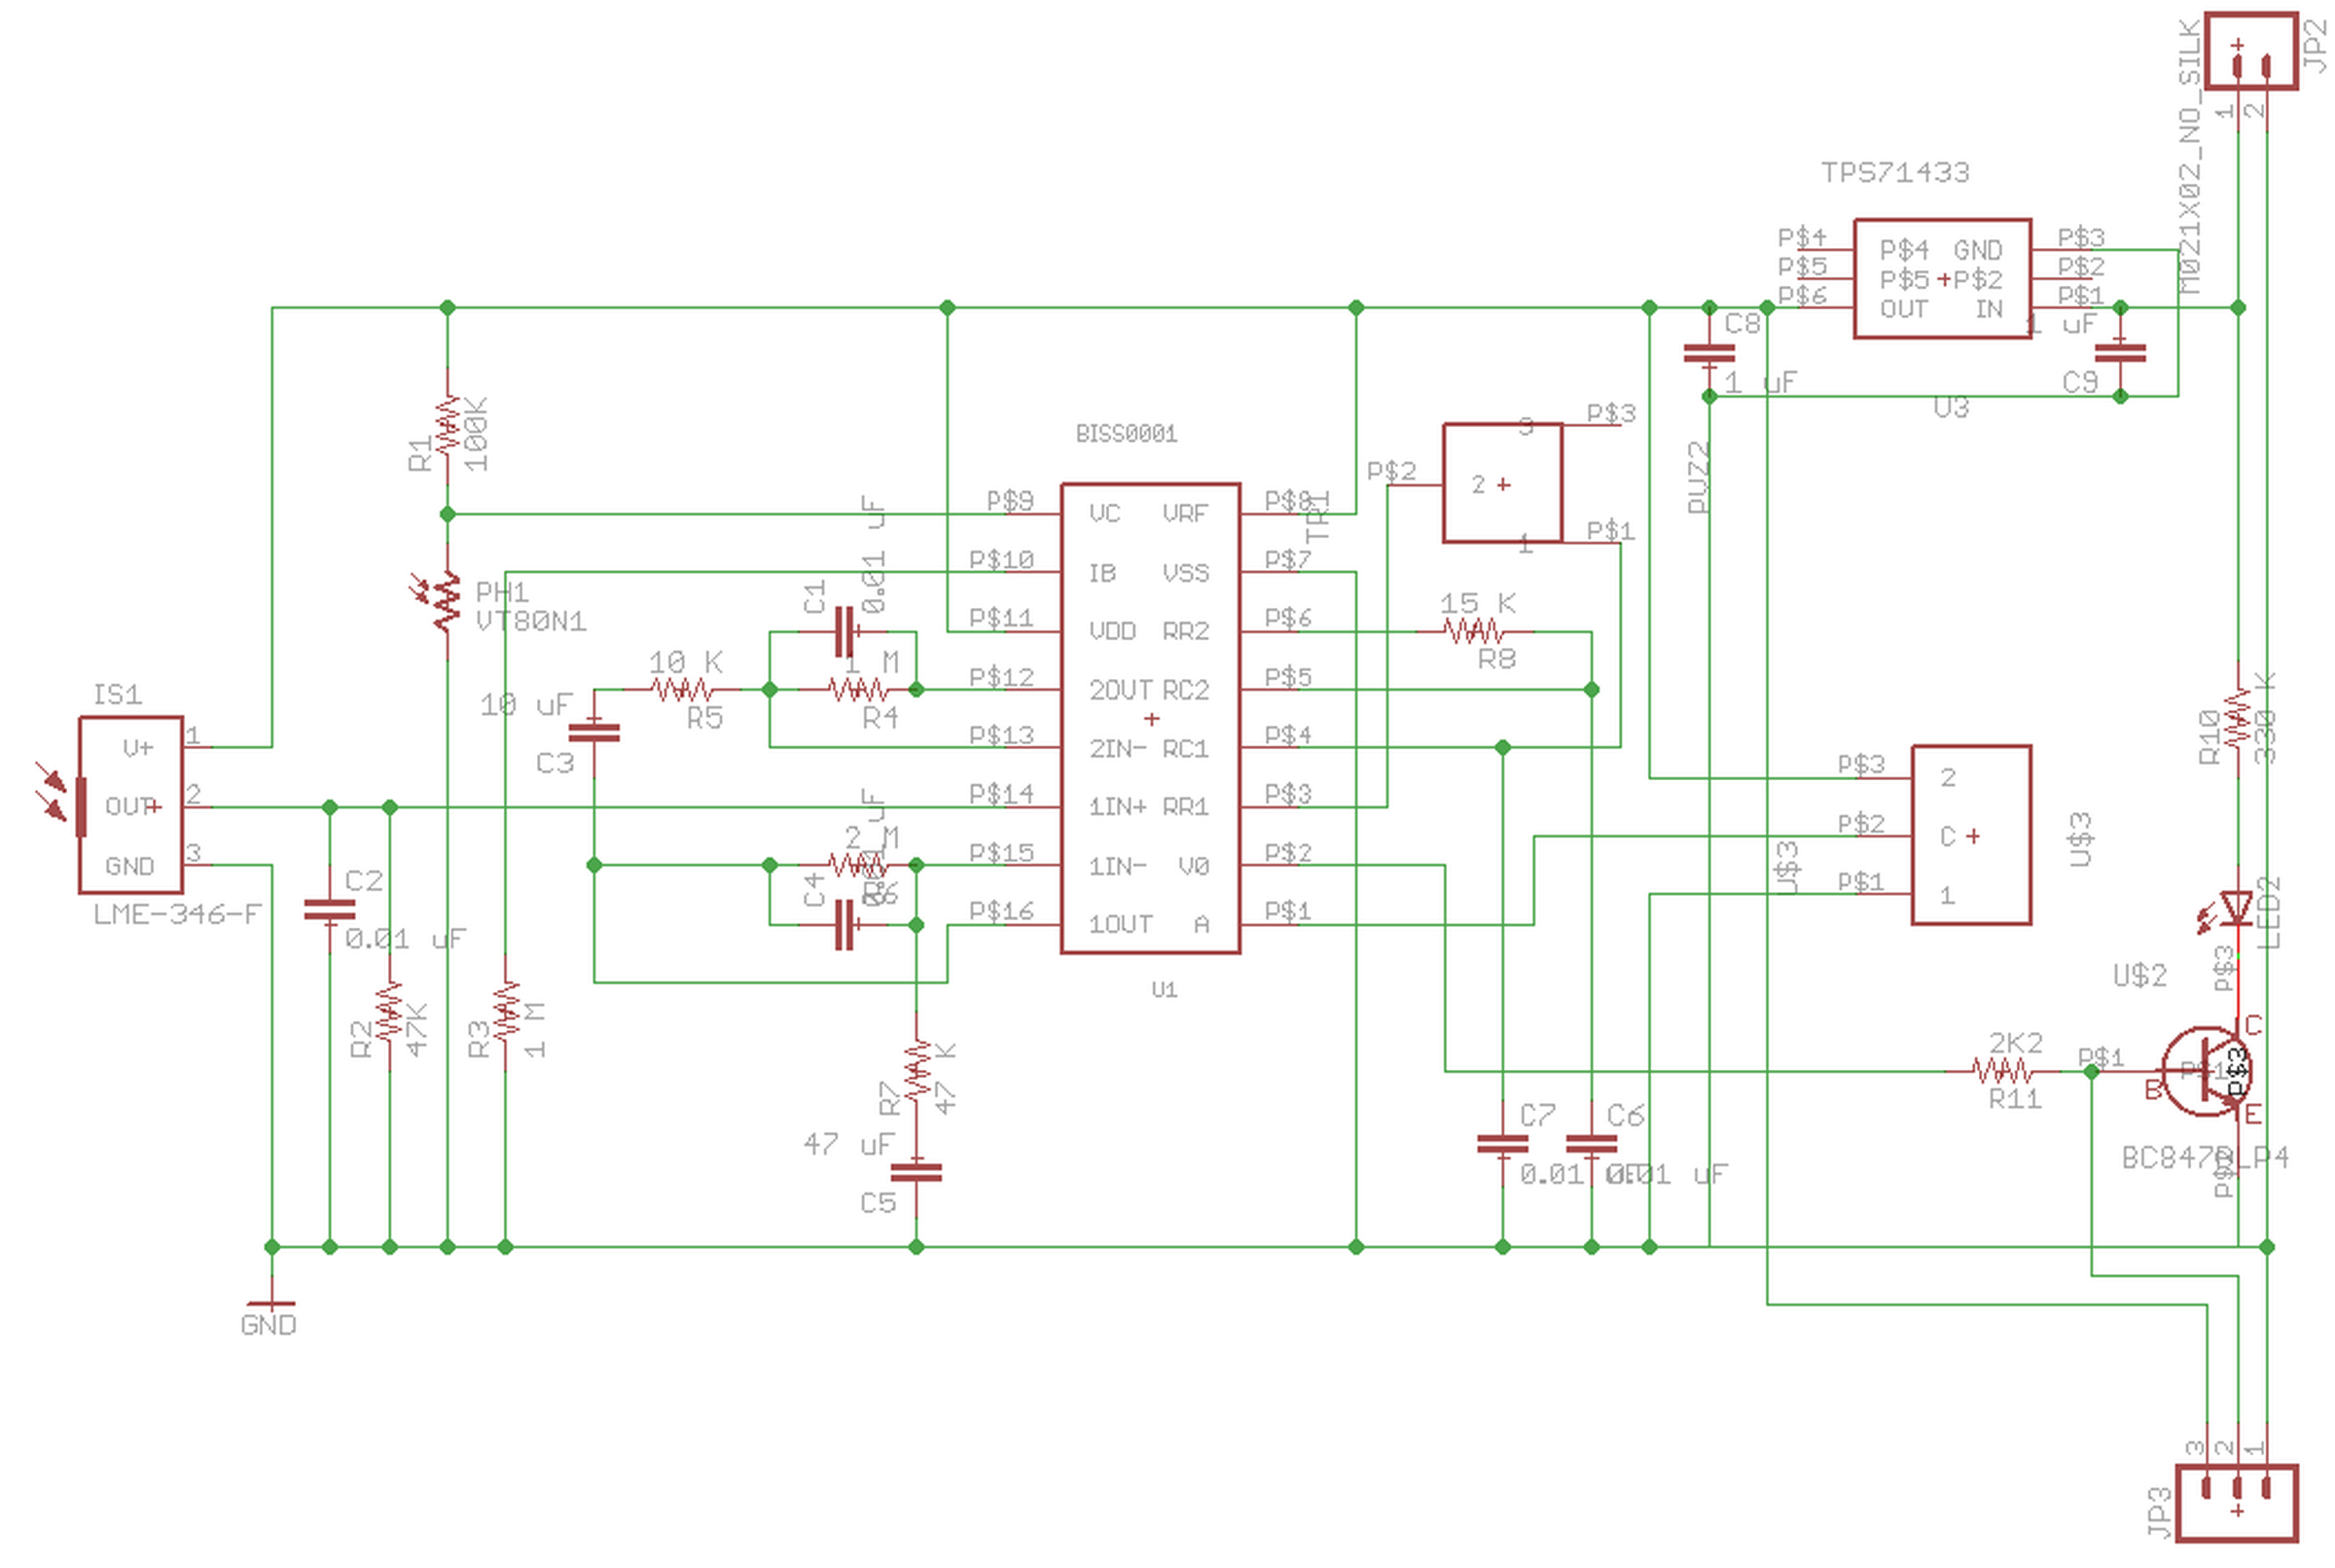 Motion Activated Blackout Light From Pesky Products On Tindie Ace Security Sensor Wiring Diagram 2